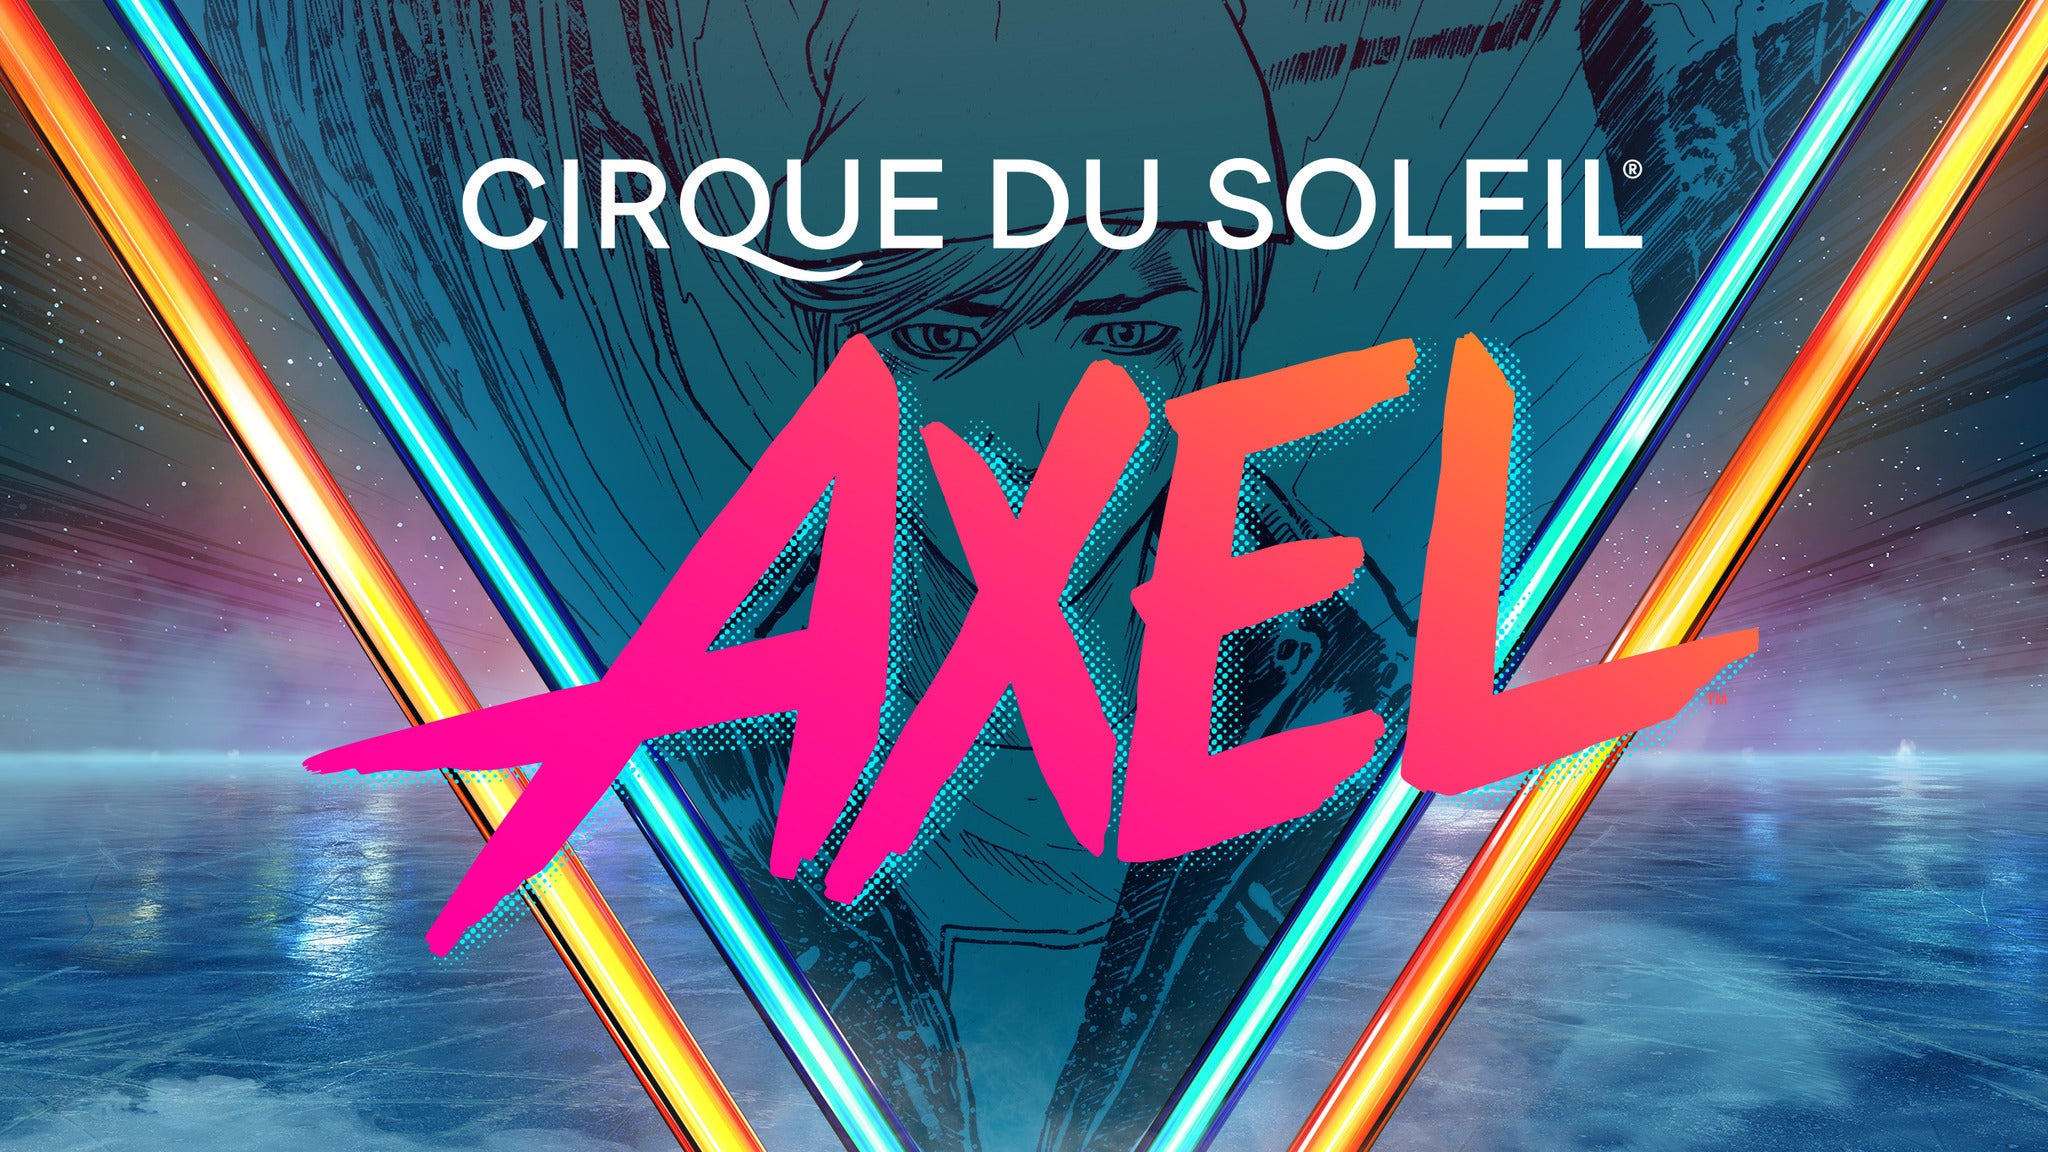 Cirque du Soleil: AXEL at Pensacola Bay Center